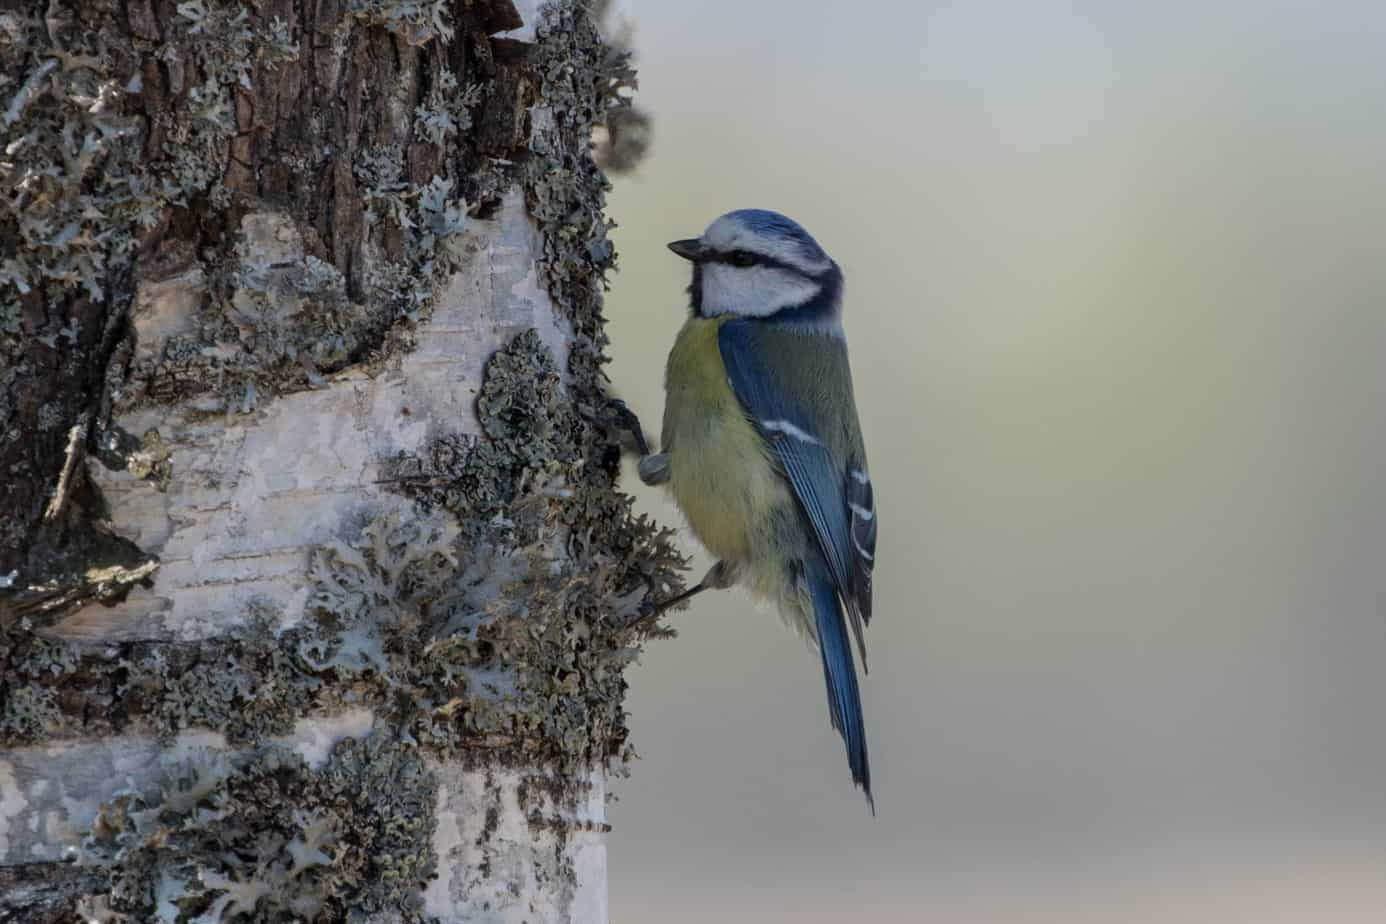 Eurasian Blue Tit @ Northern Øyeren Nature Reserve, Norway. Photo: Håvard Rosenlund